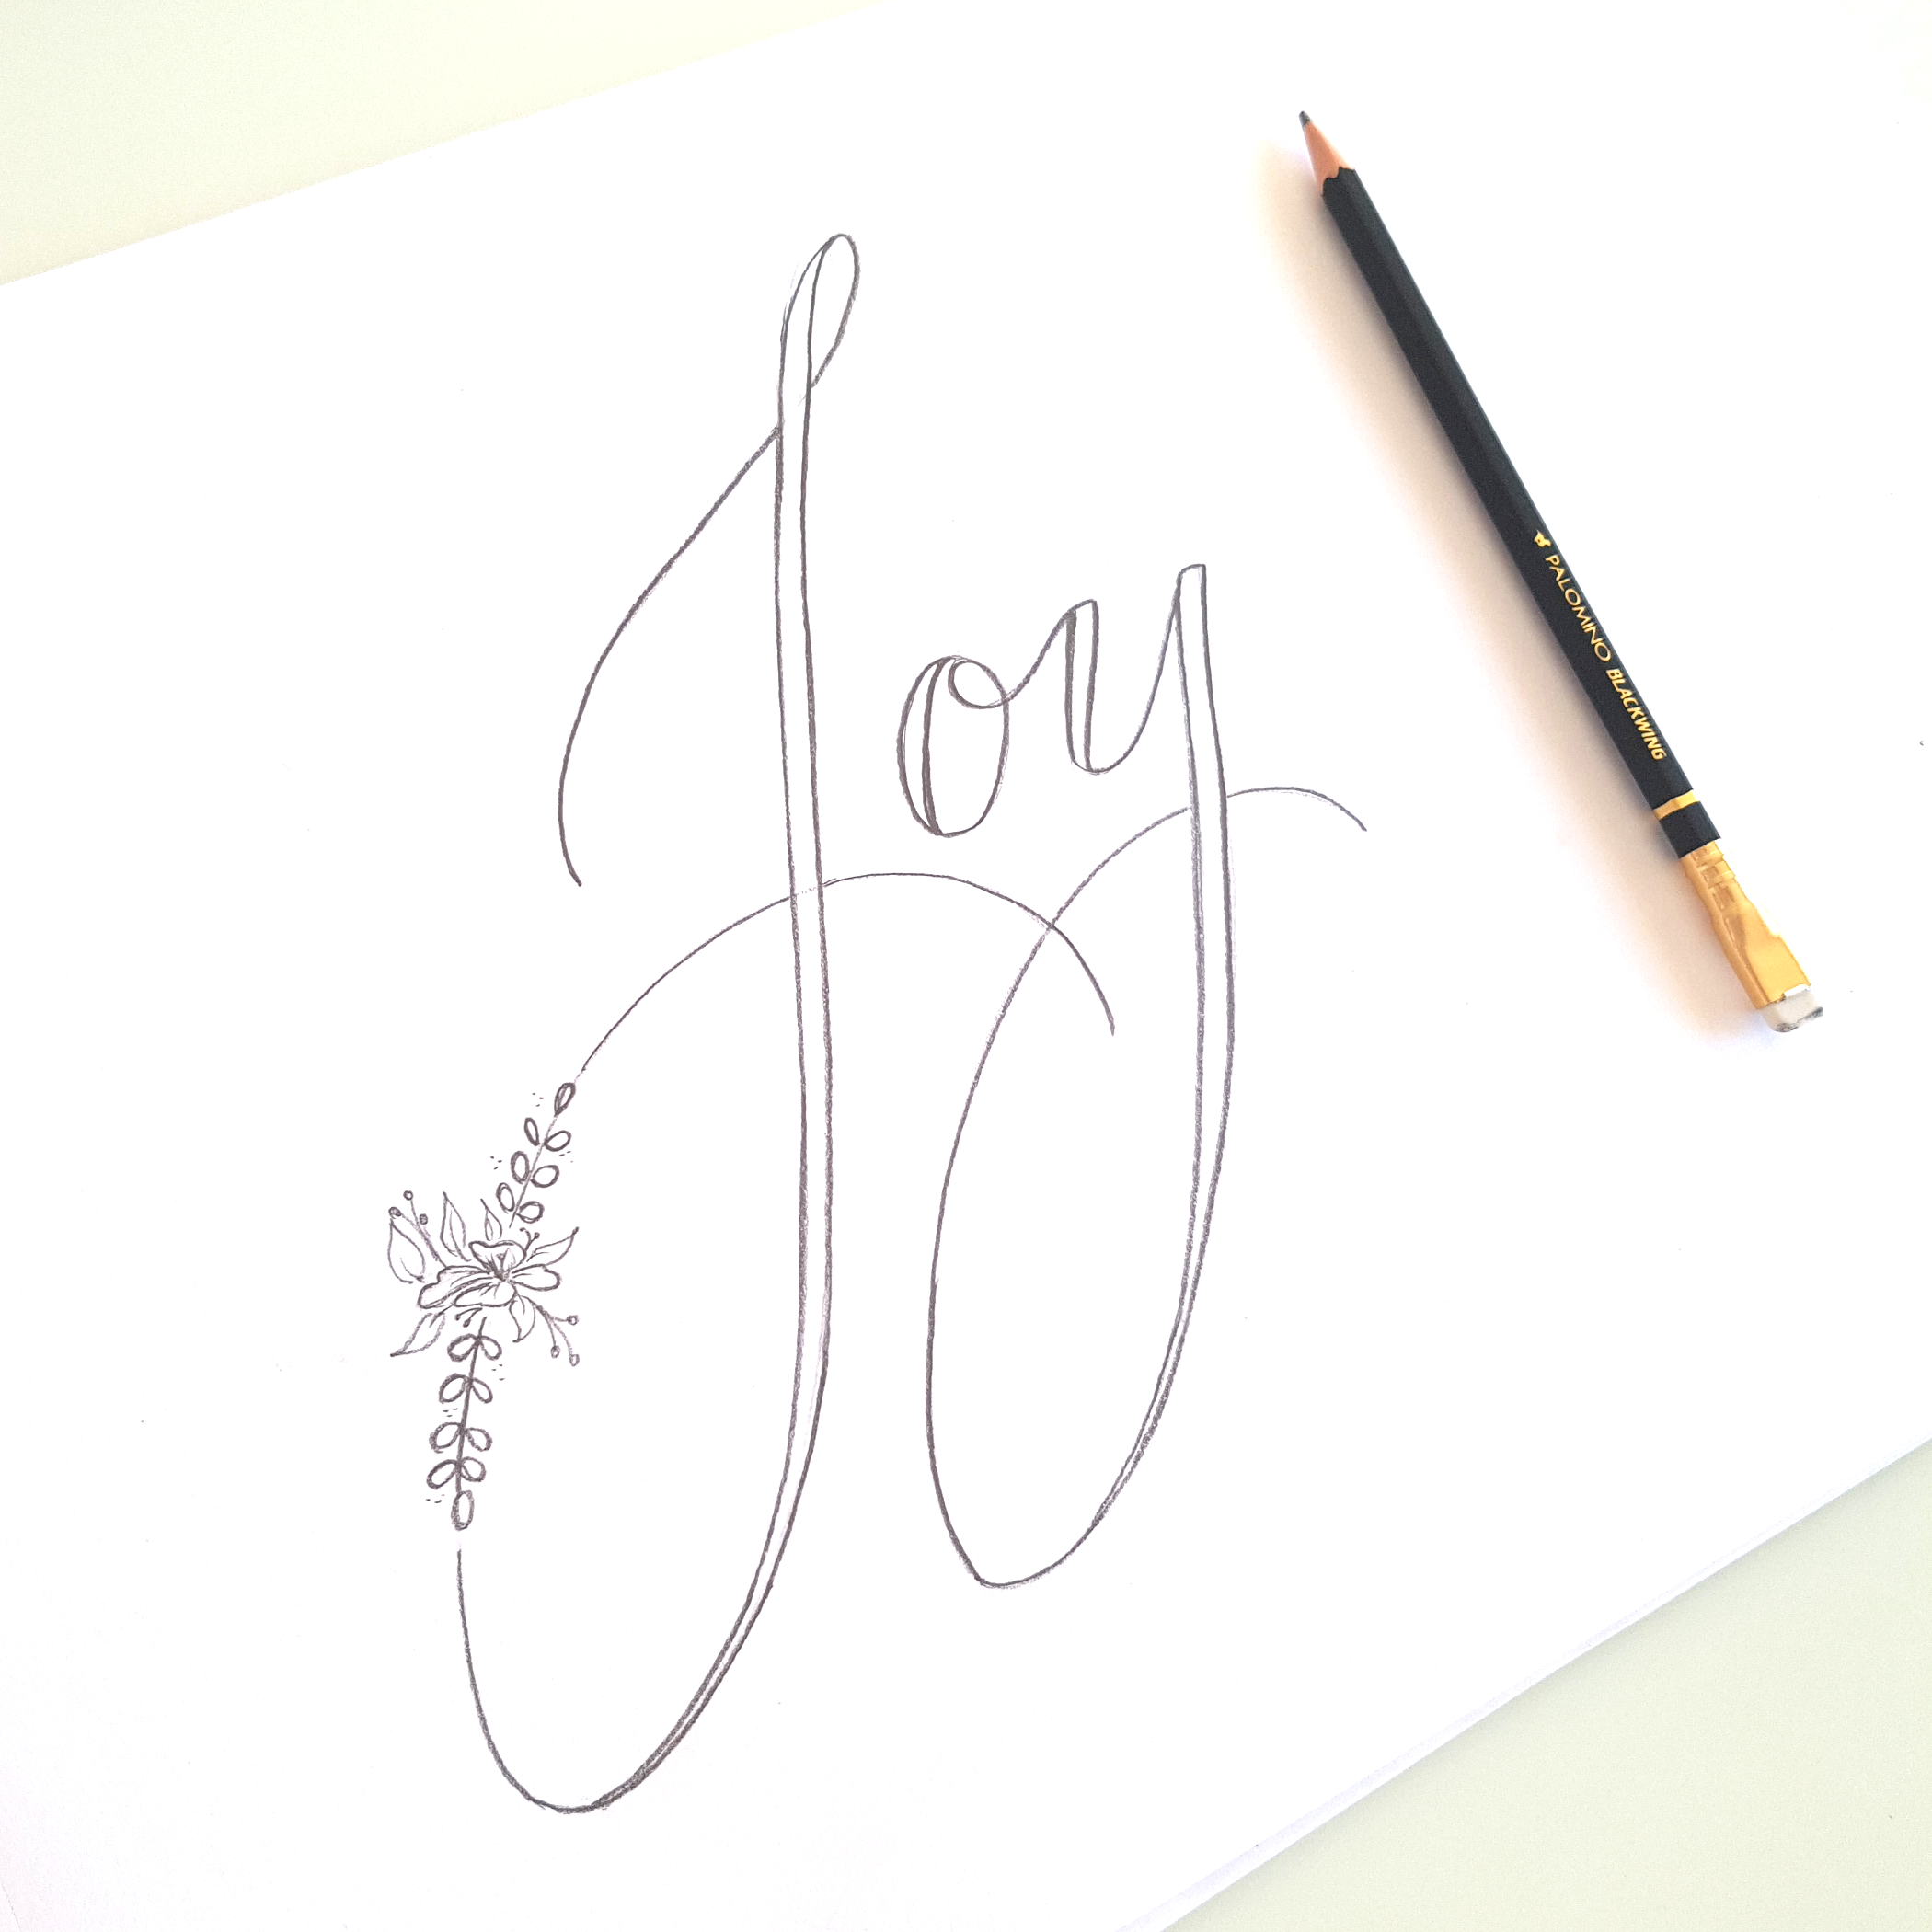 Faux calligraphy pencil sketch before adding ink